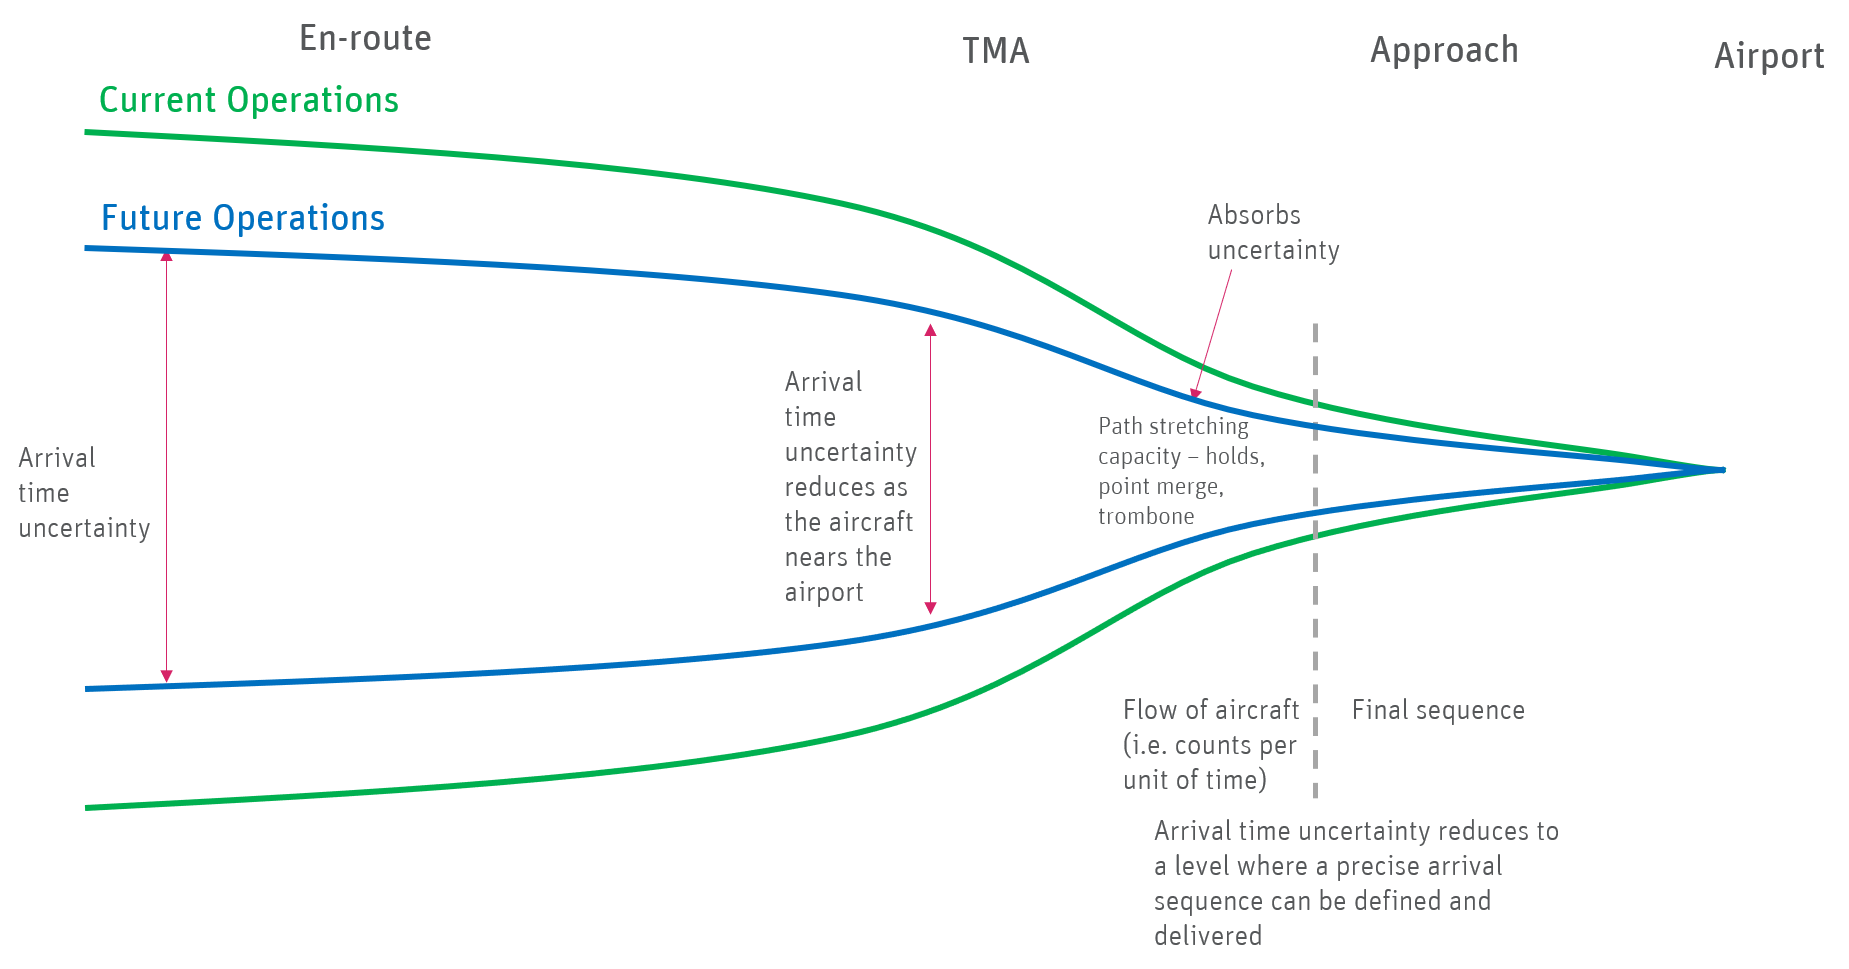 Illustration showing funnel of increasing certainty in landing time